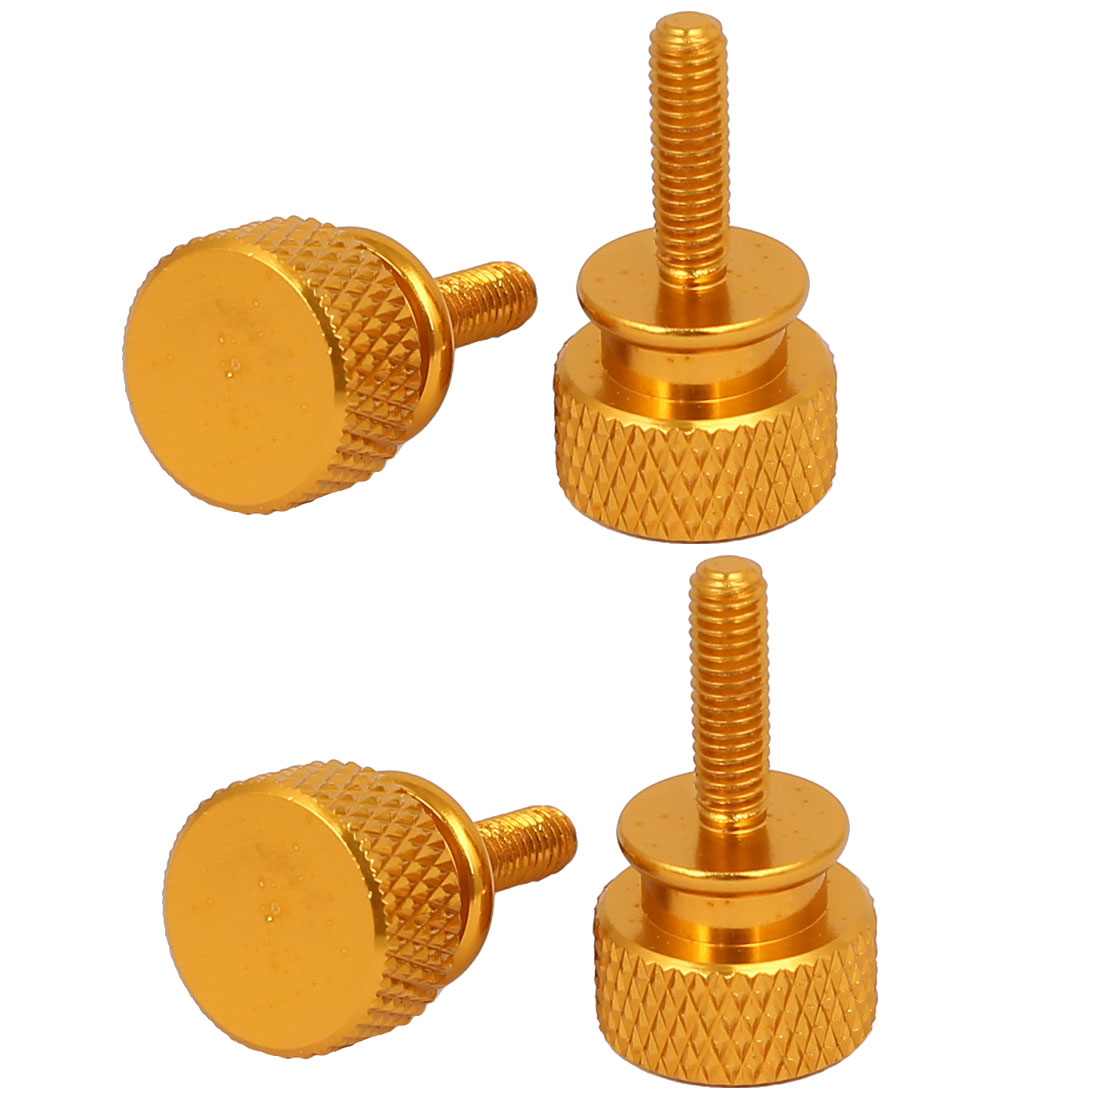 Computer PC Case Fully Threaded Knurled Thumb Screws Gold Tone M3.5x12mm 4pcs